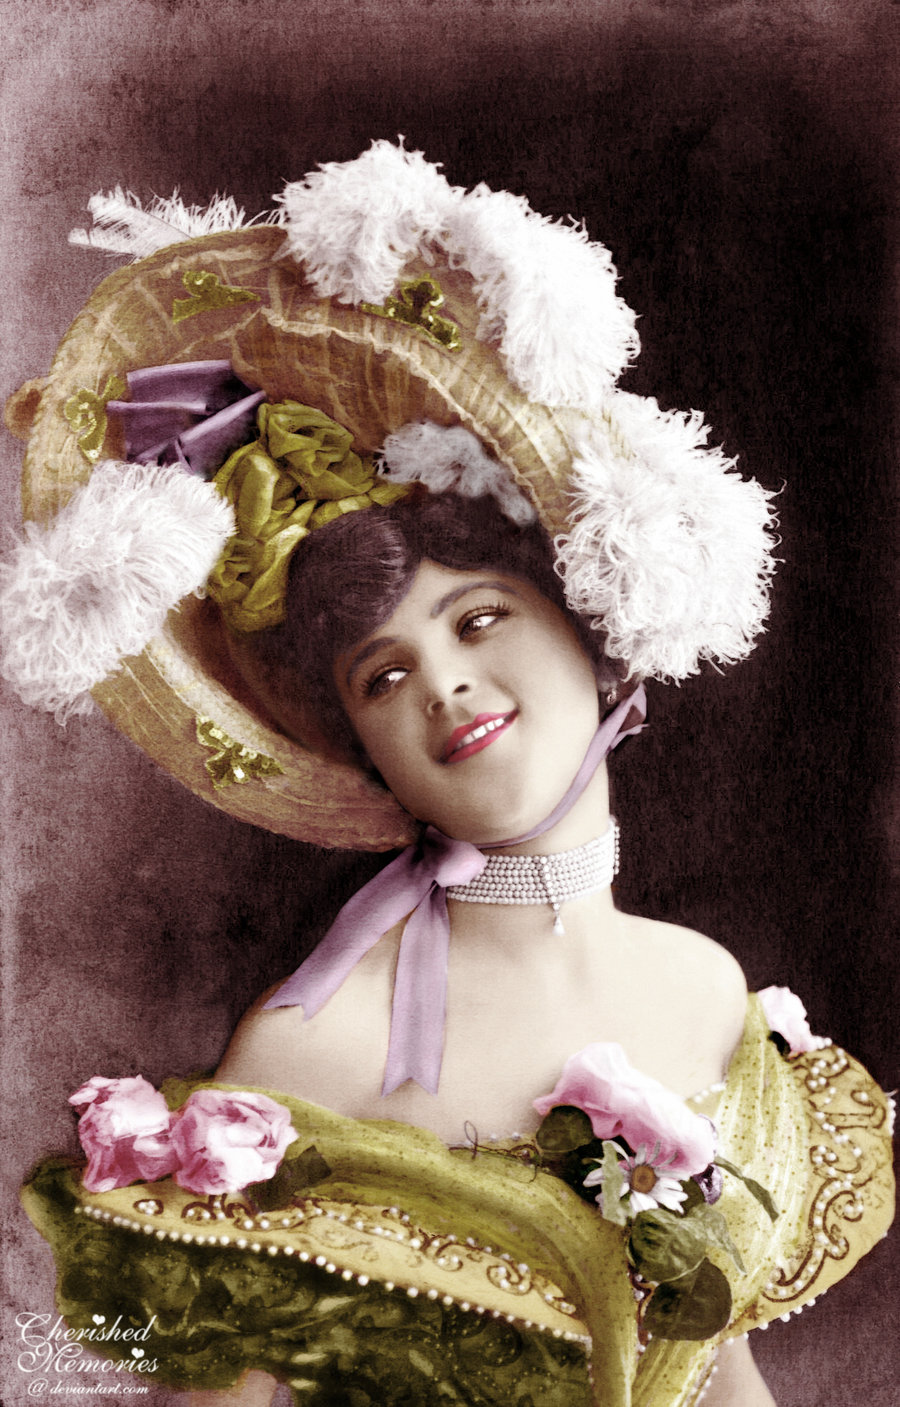 Will you be this pleased with your bonnet creation?